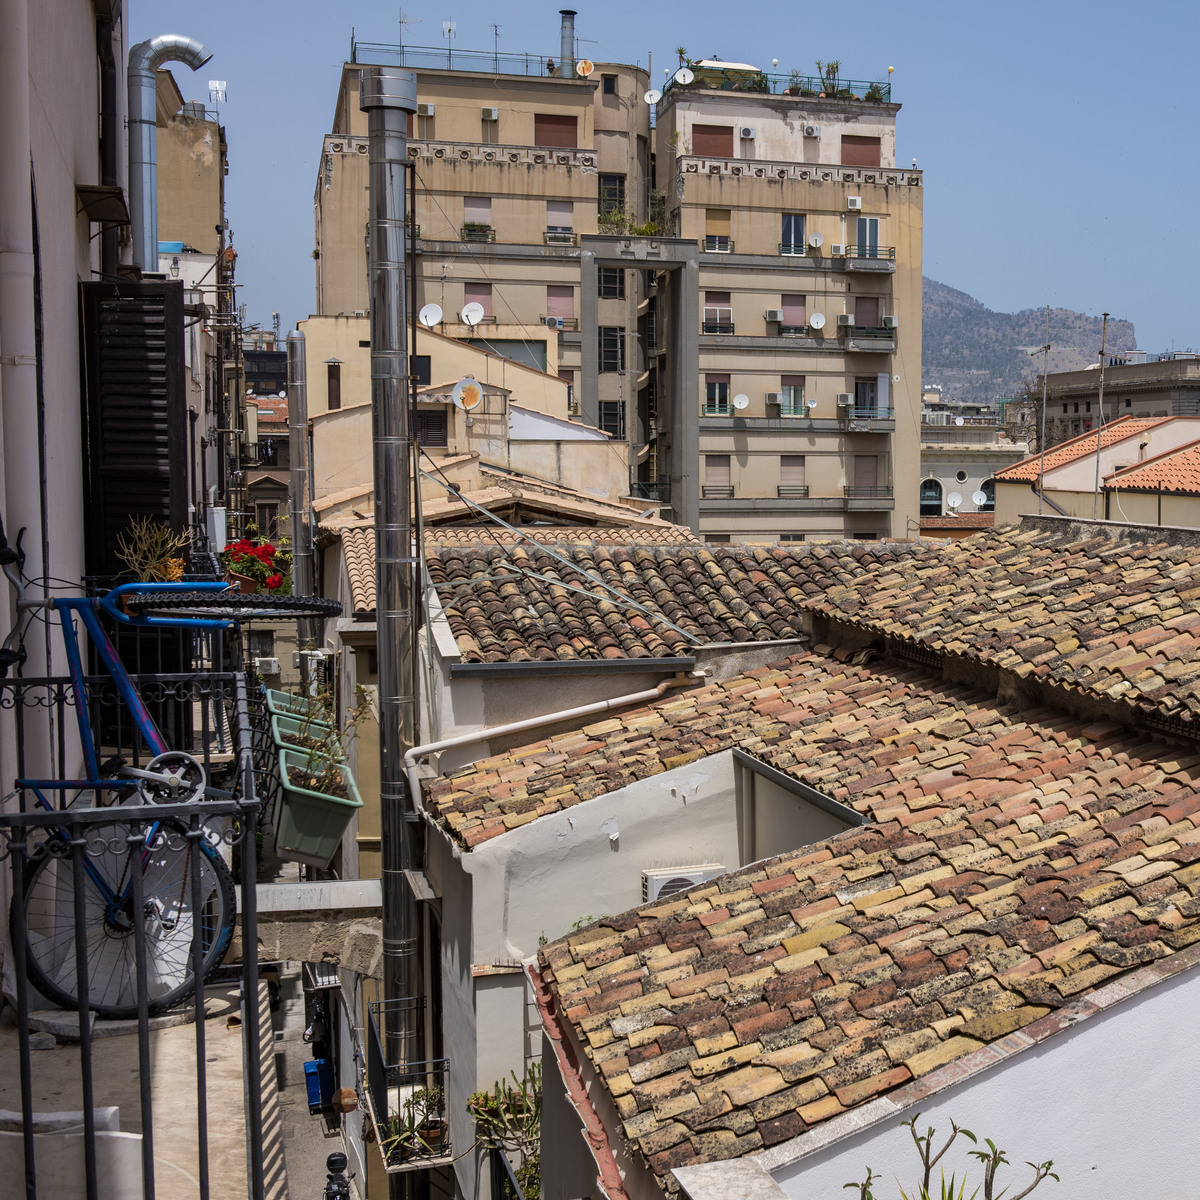 Palermo rooftops